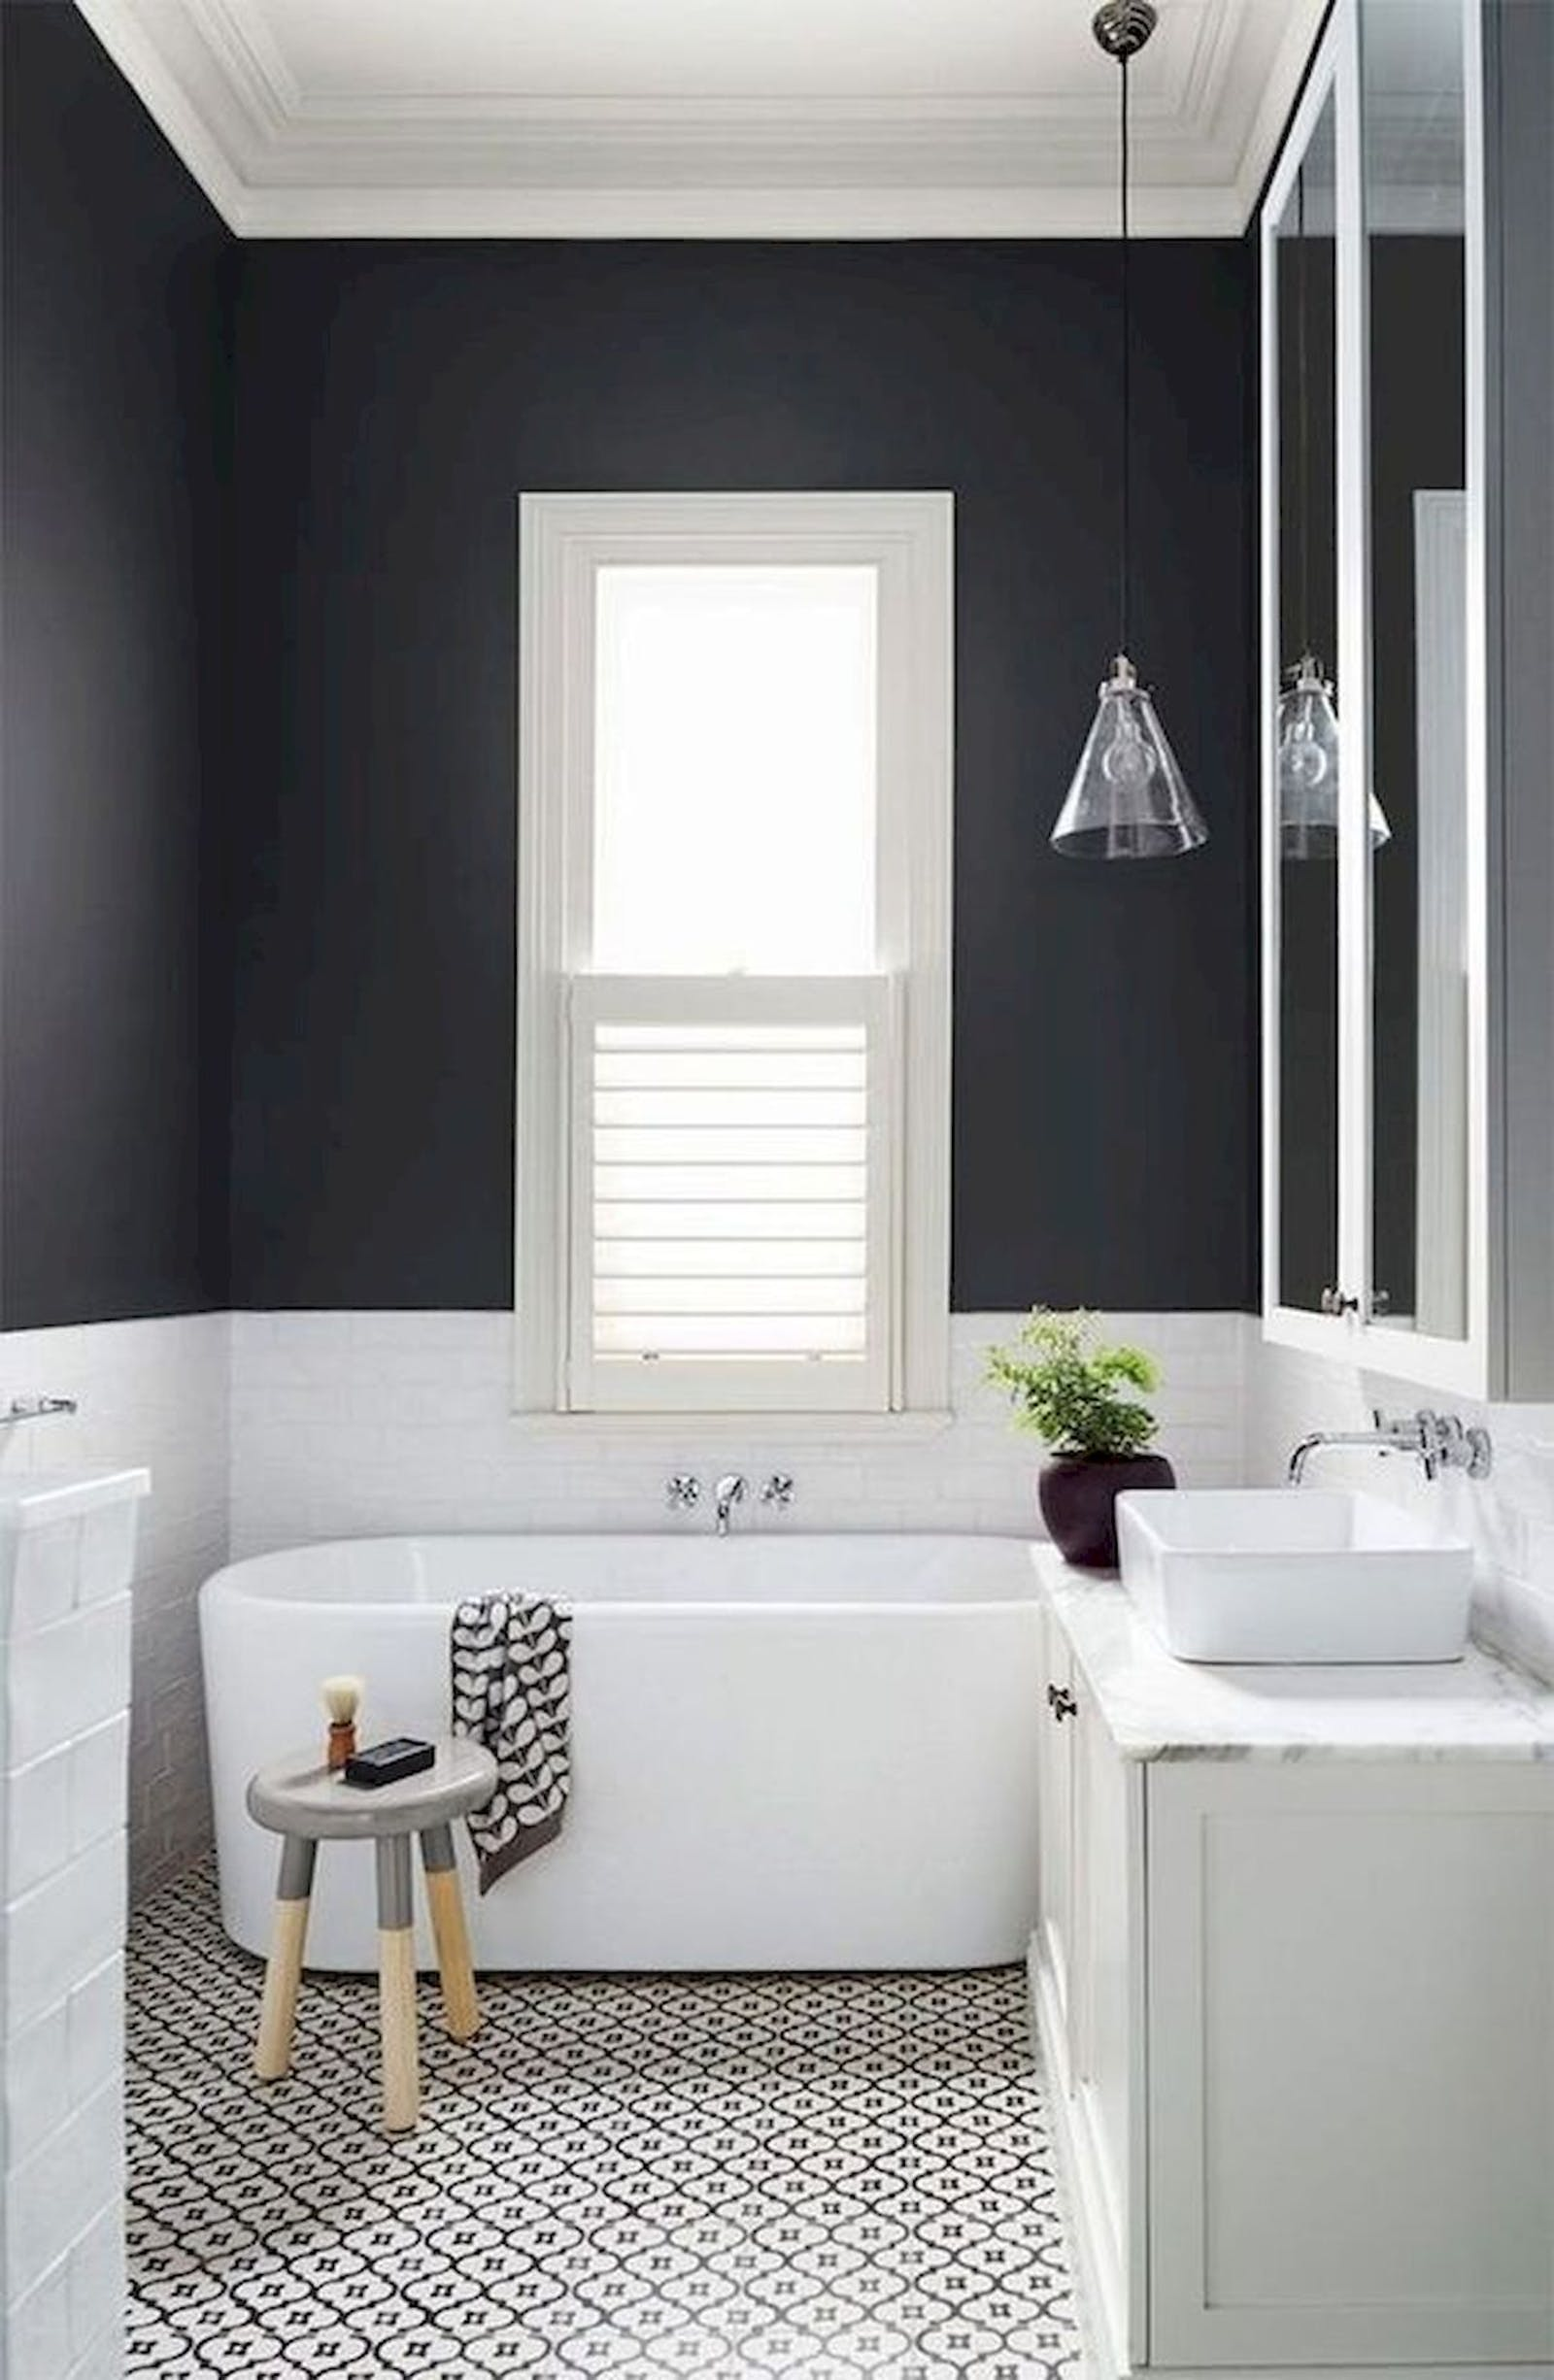 Black bathroom with a bathtub and patterned tiles